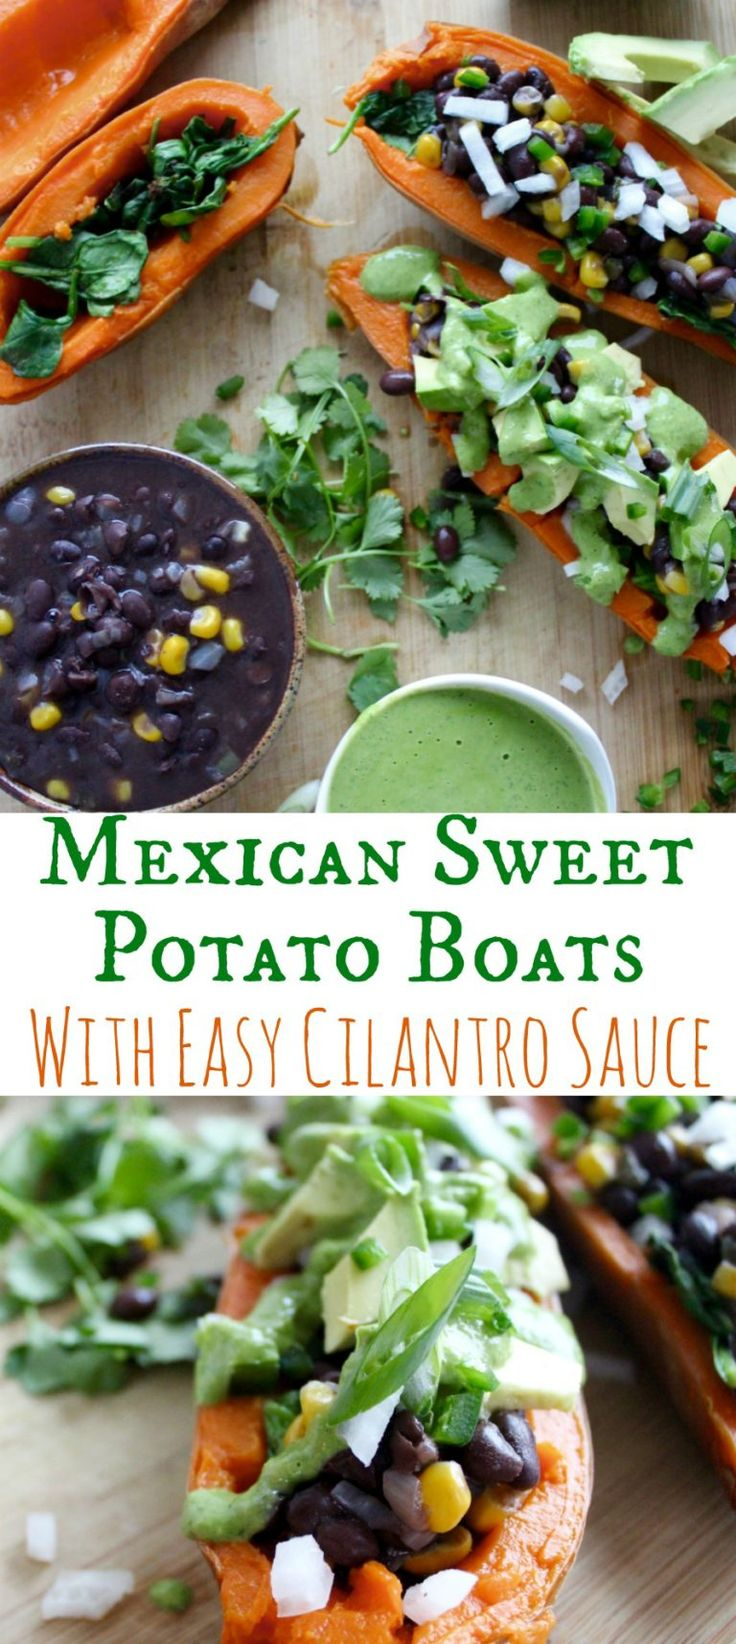 Mexican Sweet Potato Boats with Cilantro Sauce